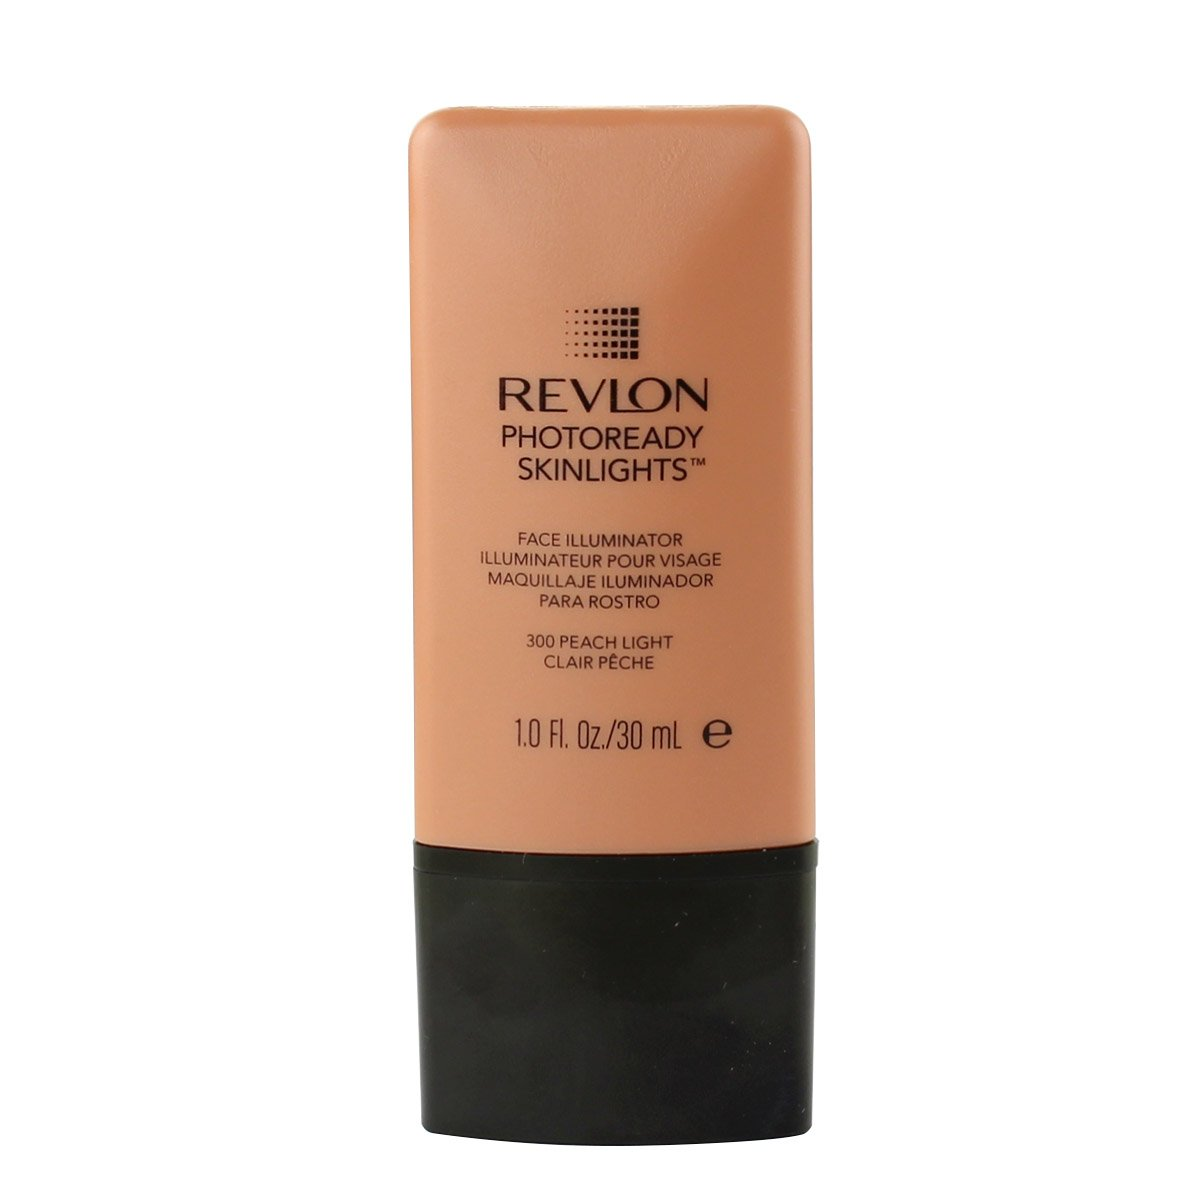 Revlon PhotoReady SkinLights Face Illuminator 300 Peach Light 30ml 0309972259035